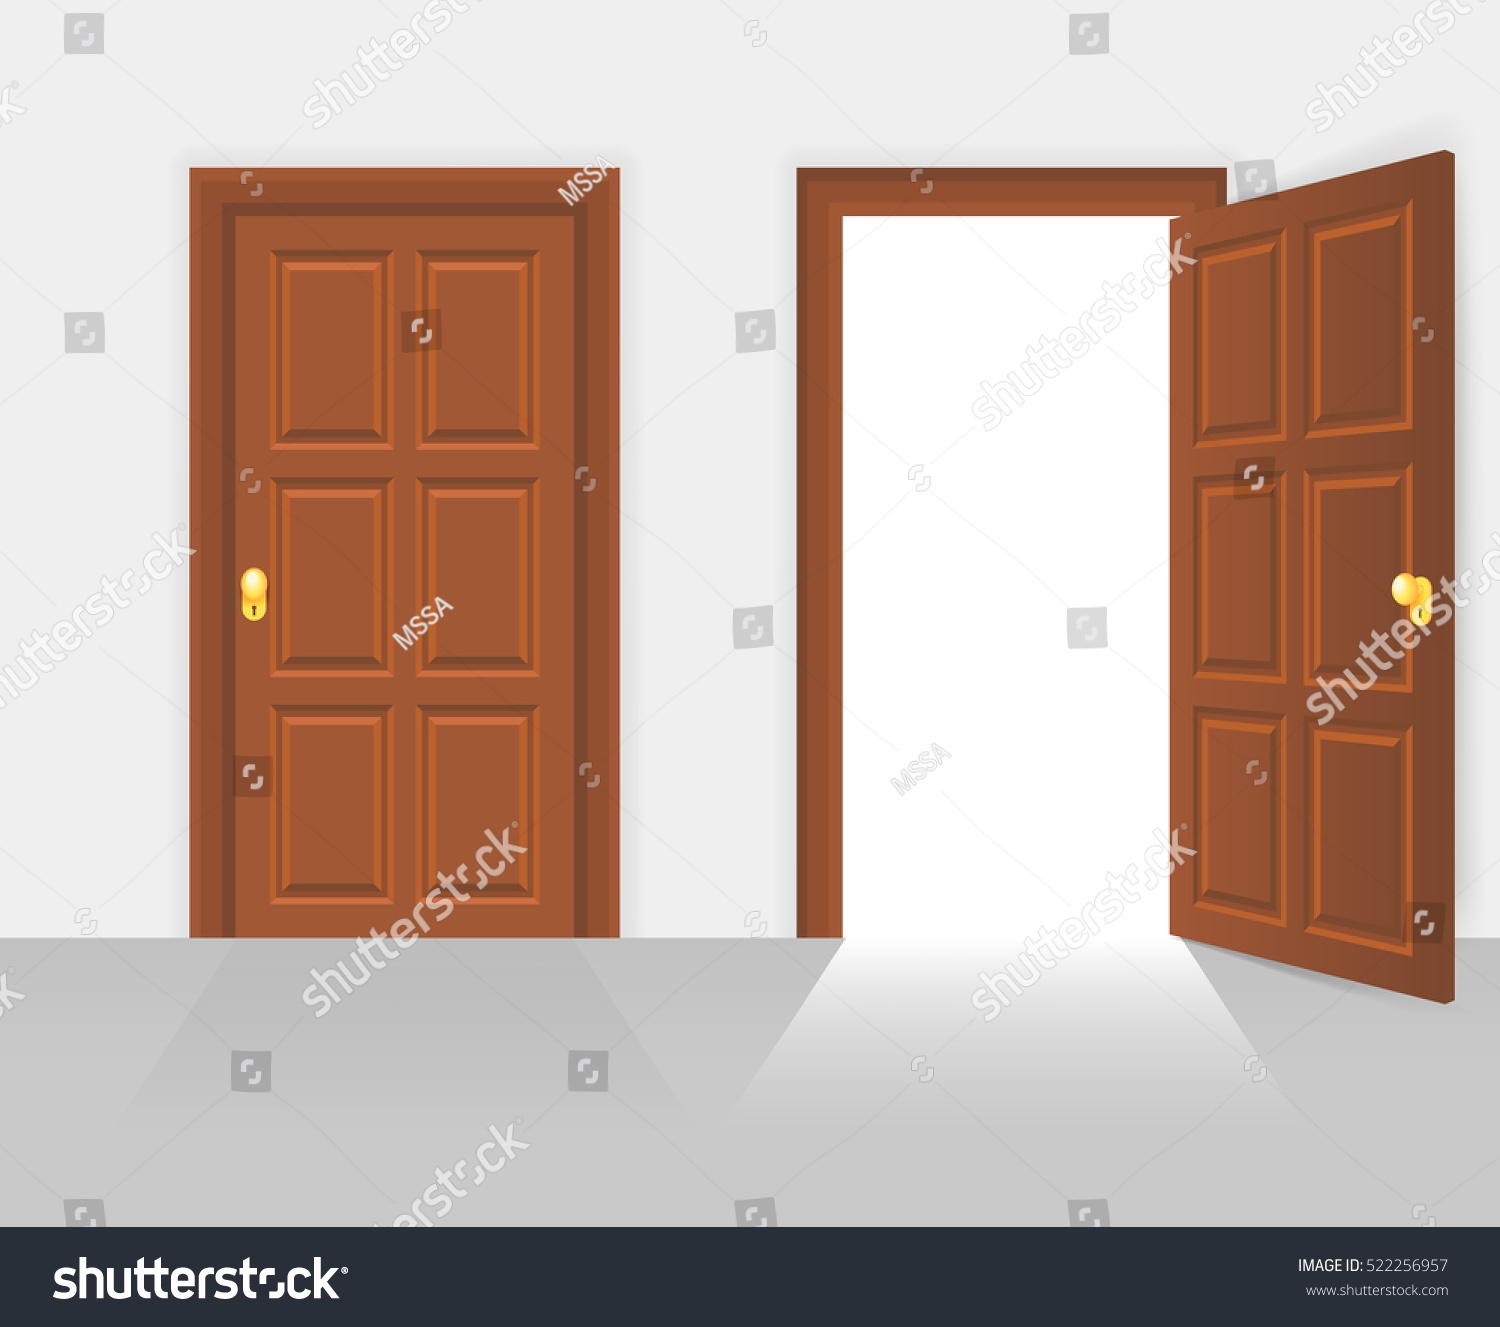 Open door closed door - Open And Closed Door House Front Wooden Open Entry With Shining Light Vector Illustration